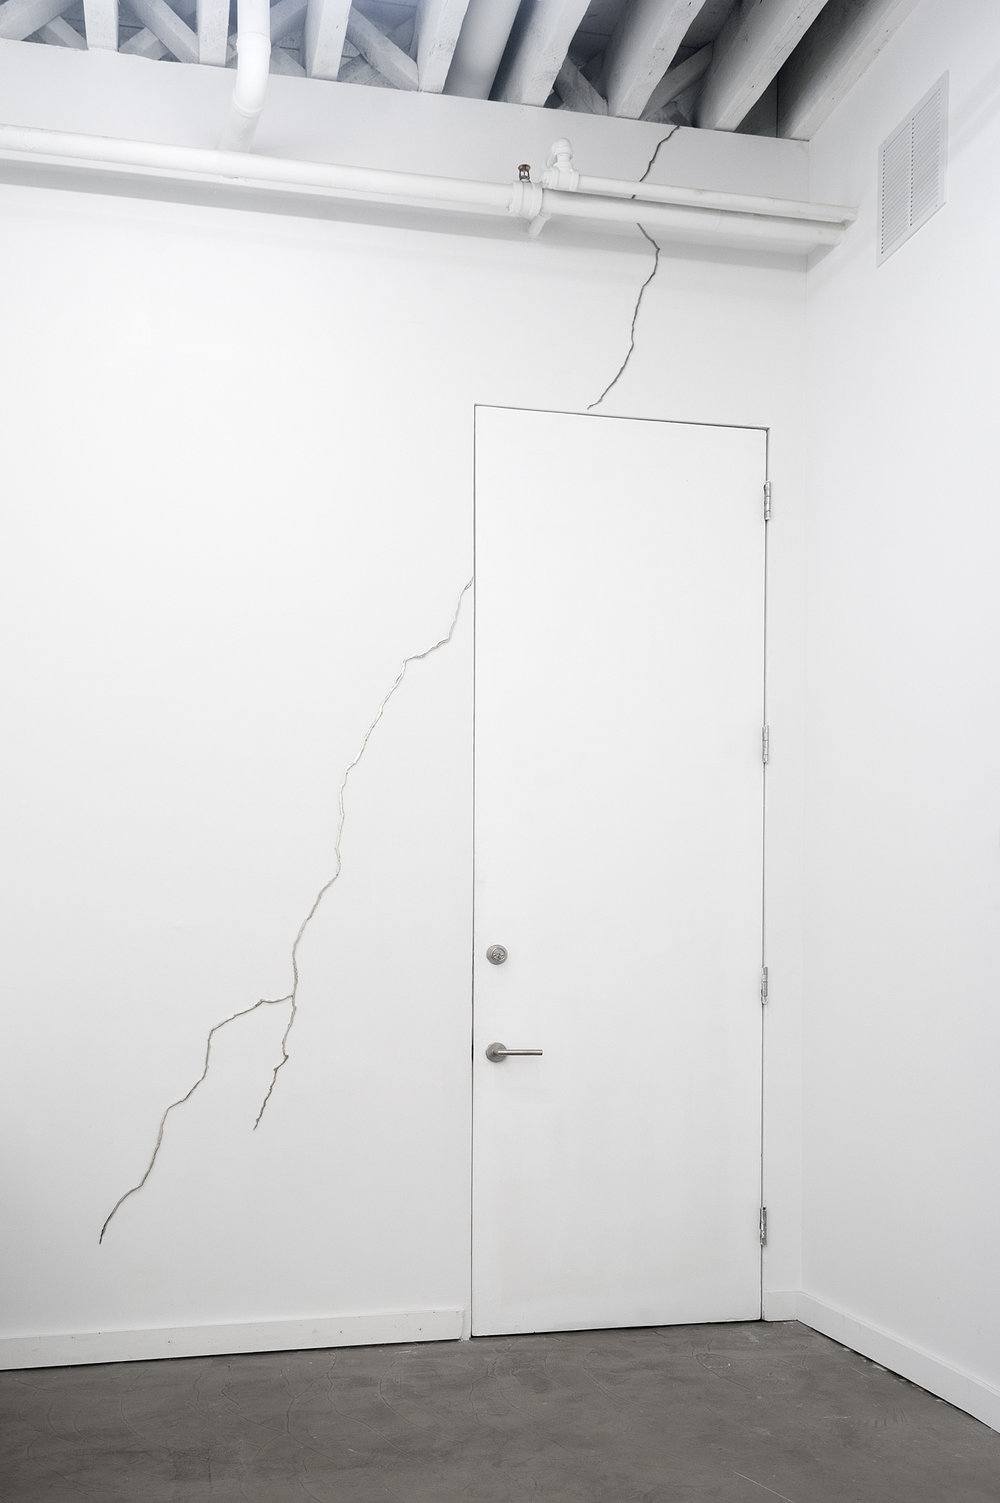 T-Rex,Nickel plated, mirror polished steel, 96 X 55 inches, 2013